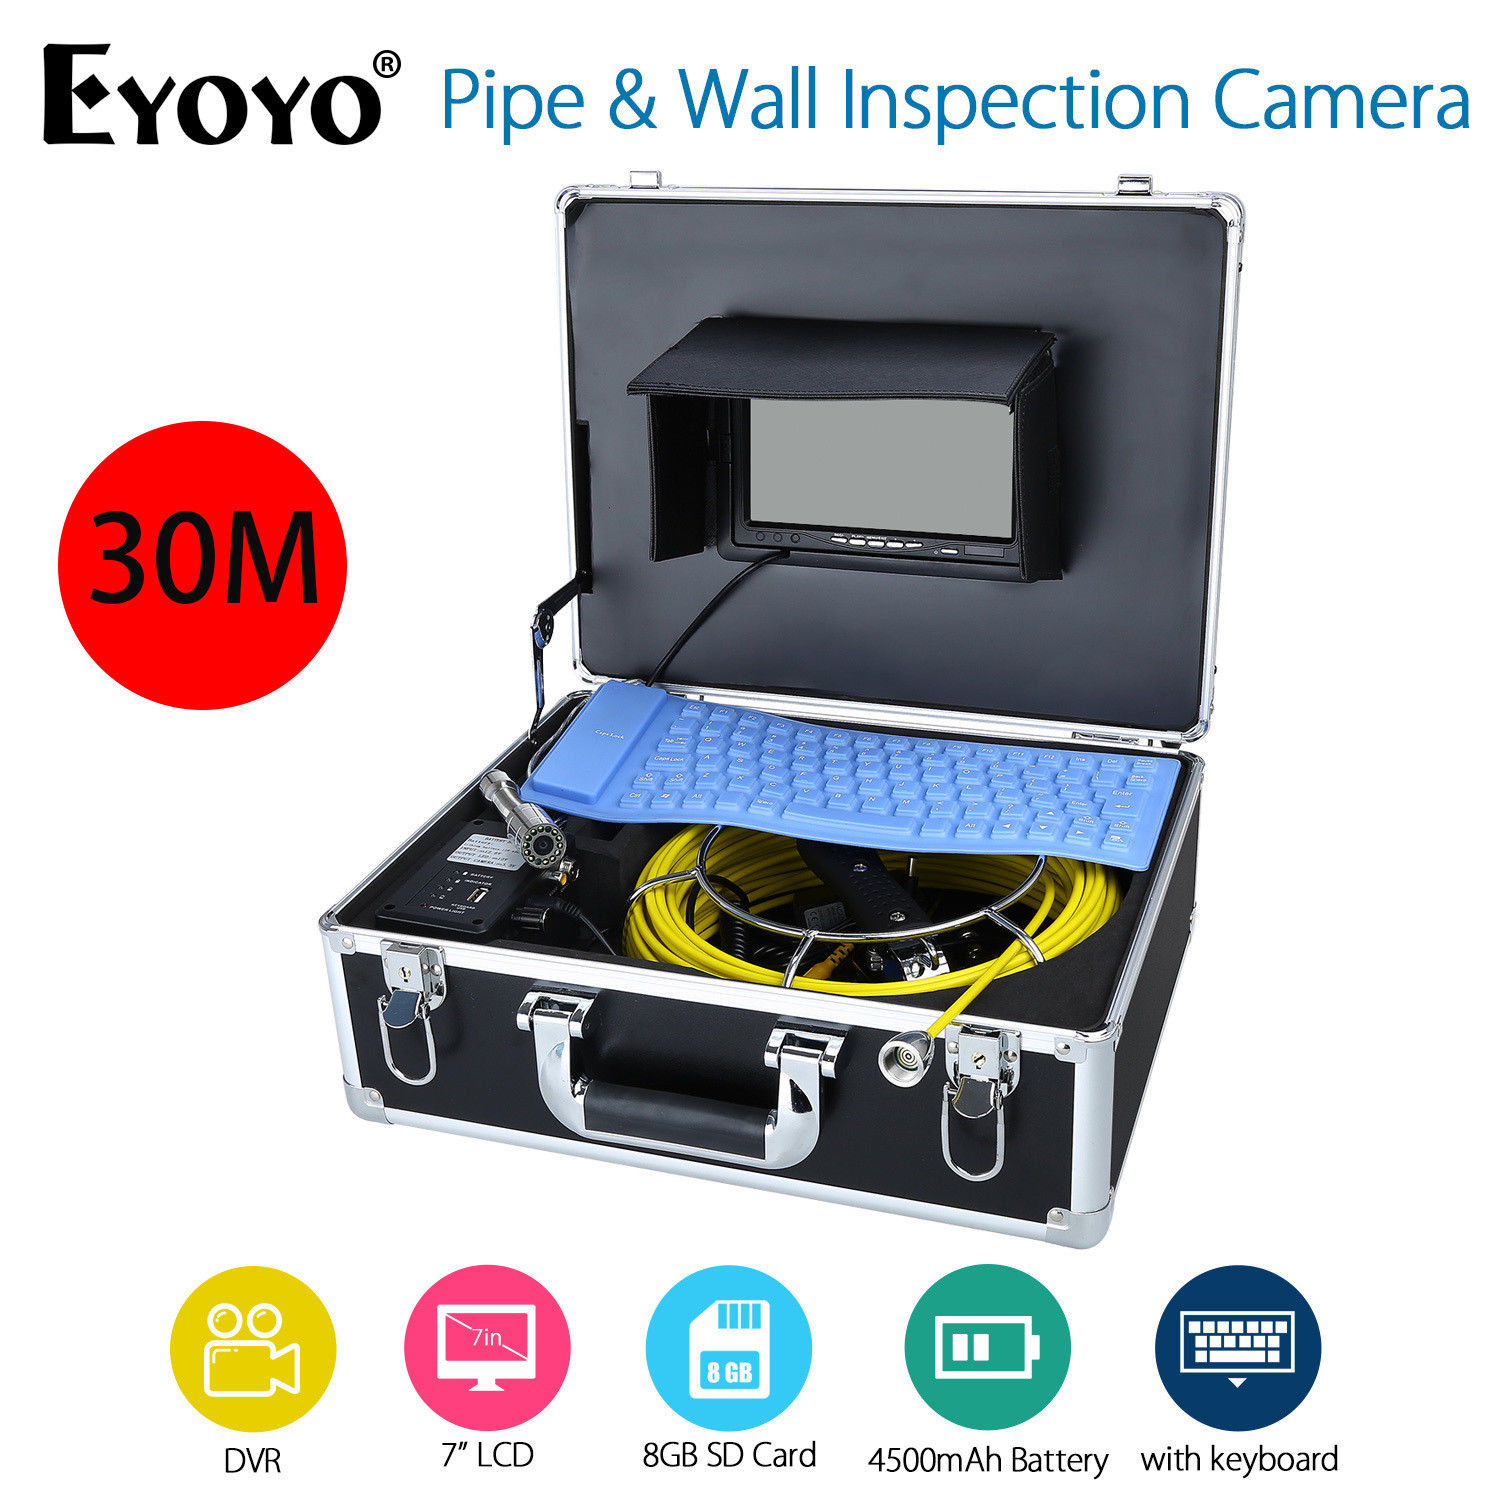 EYOYO 7 LCD Screen CMOS 30M HD 1000TVL Sewer Drain Camera Pipe Wall Inspection Endoscope With Keyboard DVR Recording 8GB Card eyoyo 7 lcd screen 20m 800 480 1000tvl 4500mah sewer drain camera pipe wall inspection endoscope w keyboard dvr recording 8gb